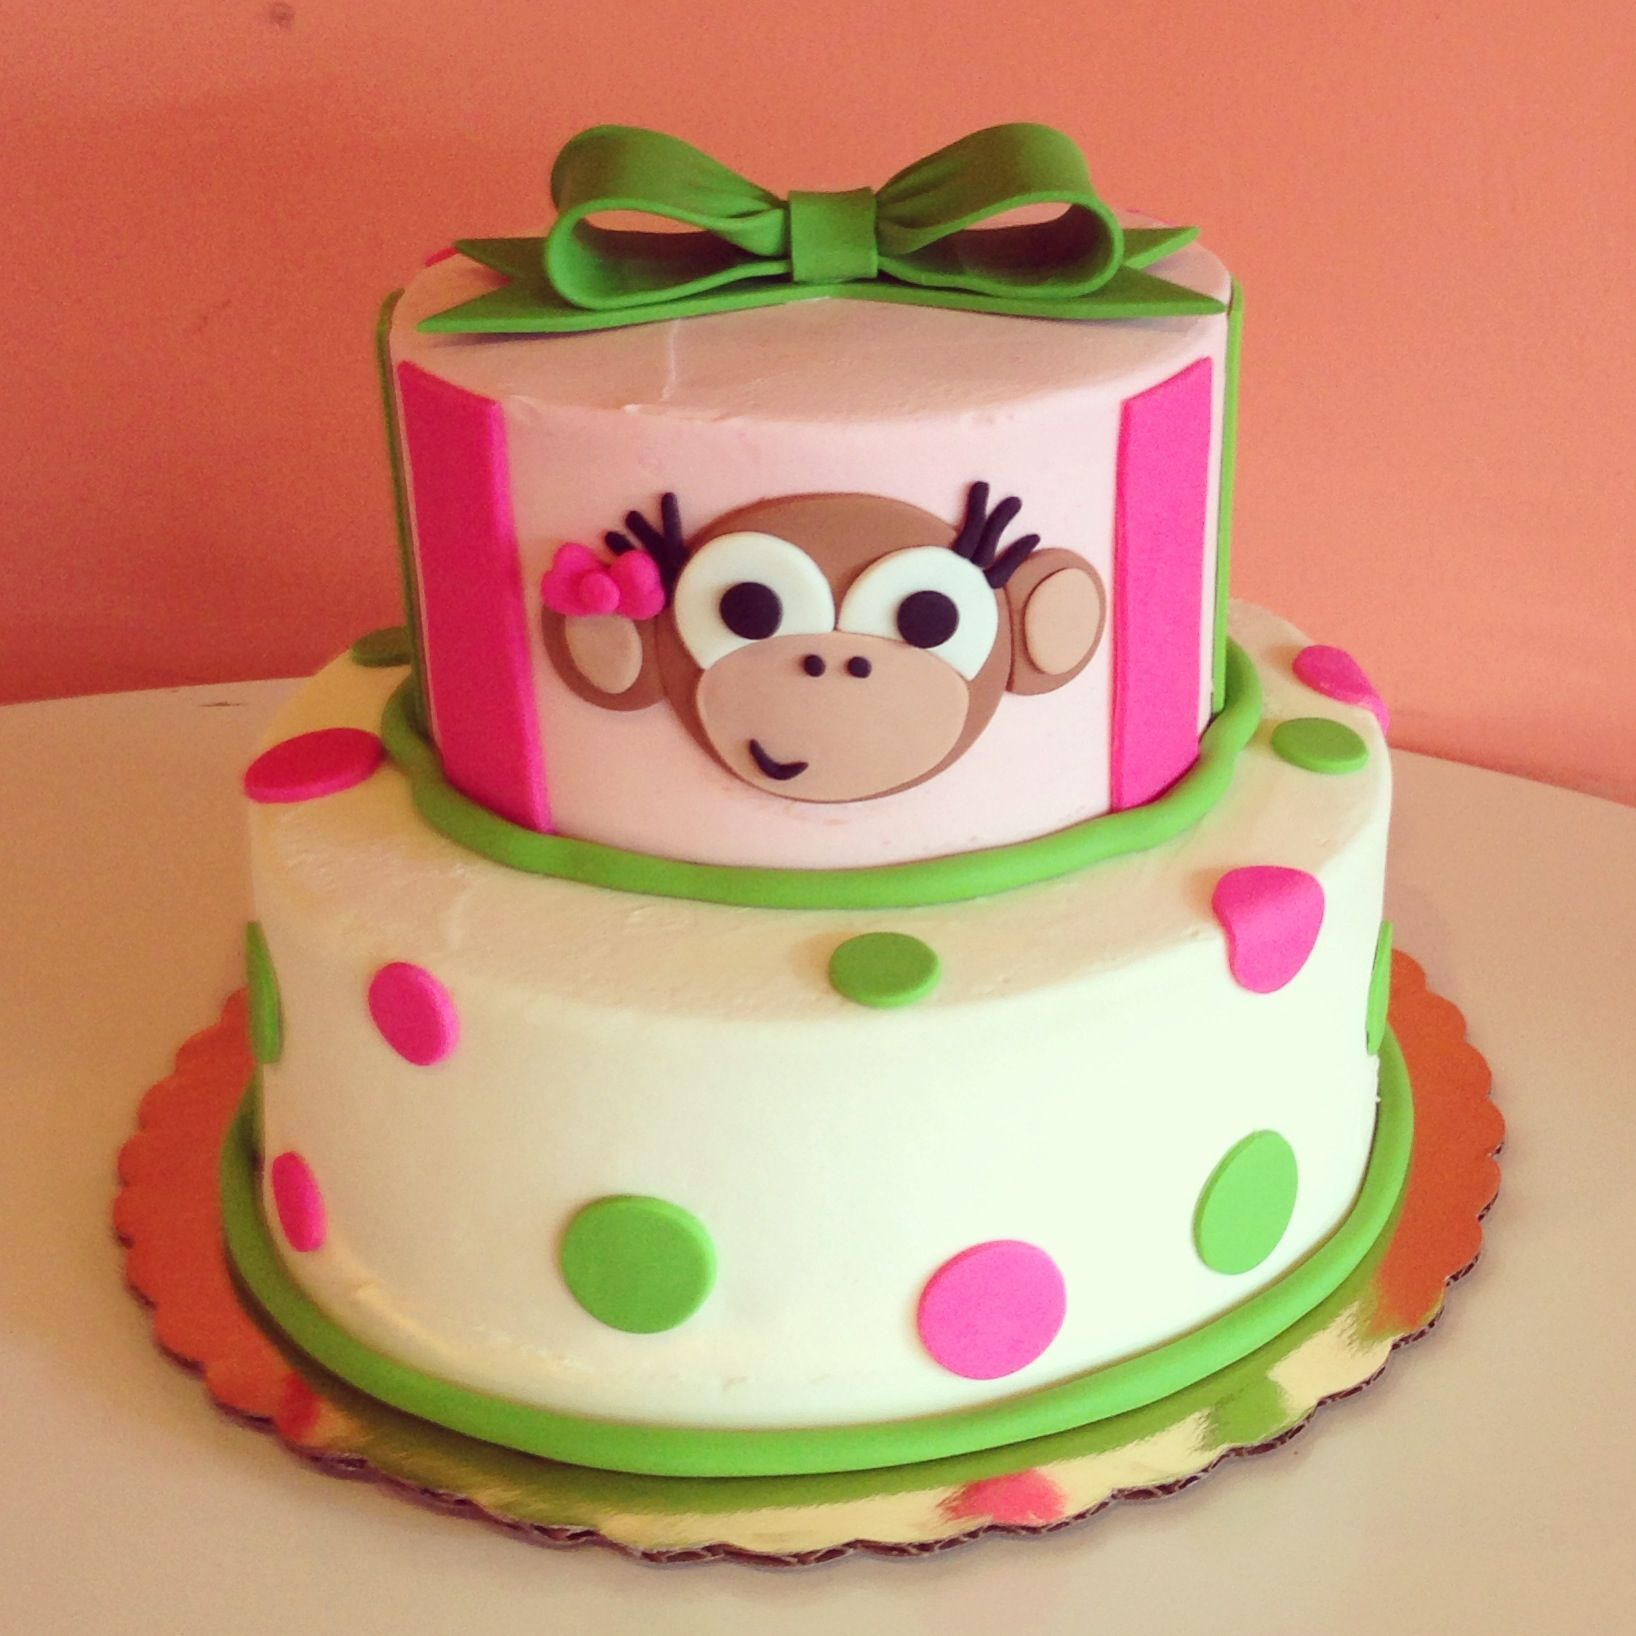 Green and Pink Monkey cake by 2tarts Bakery / New Braunfels, TX / www.2tarts.com